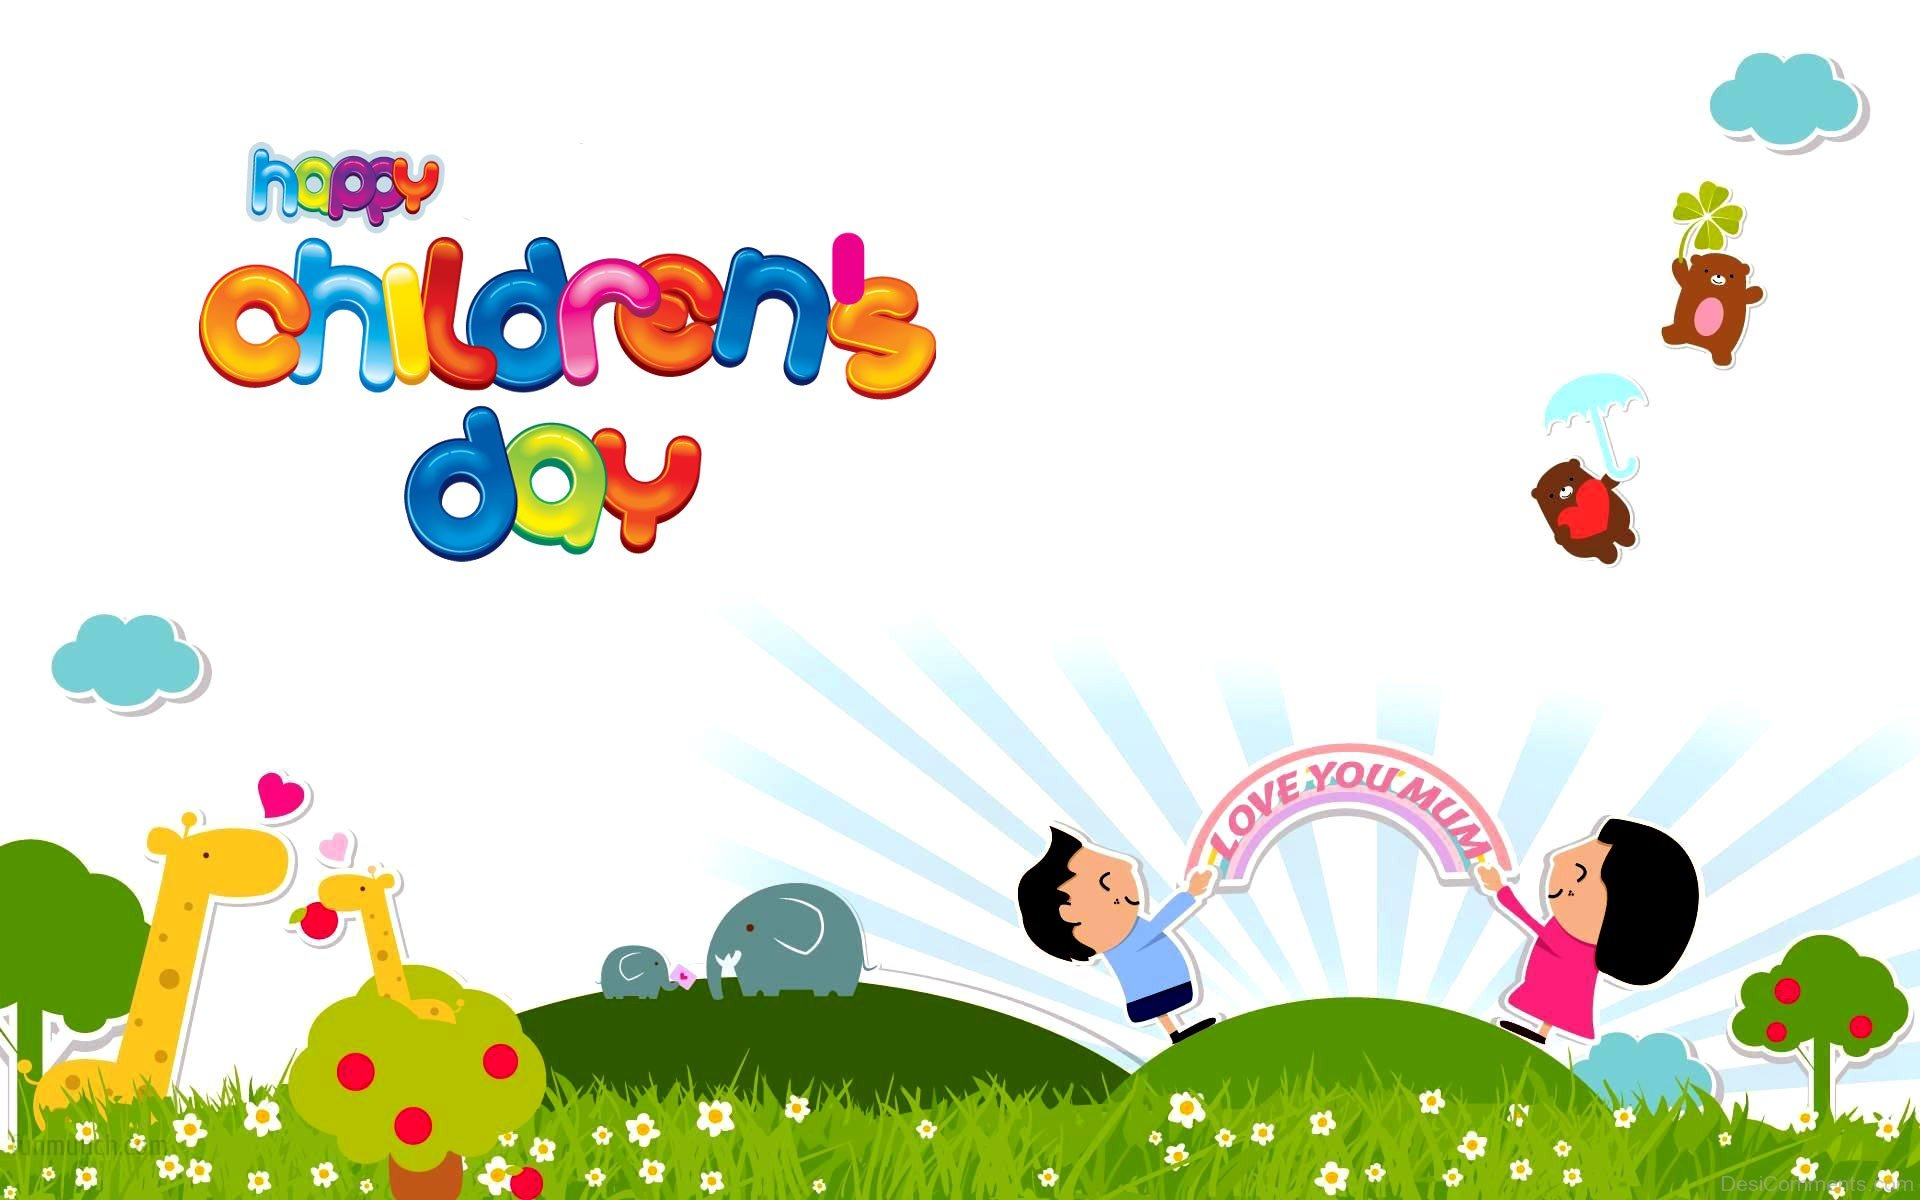 Children's Day Pictures, Images, Graphics - Page 2